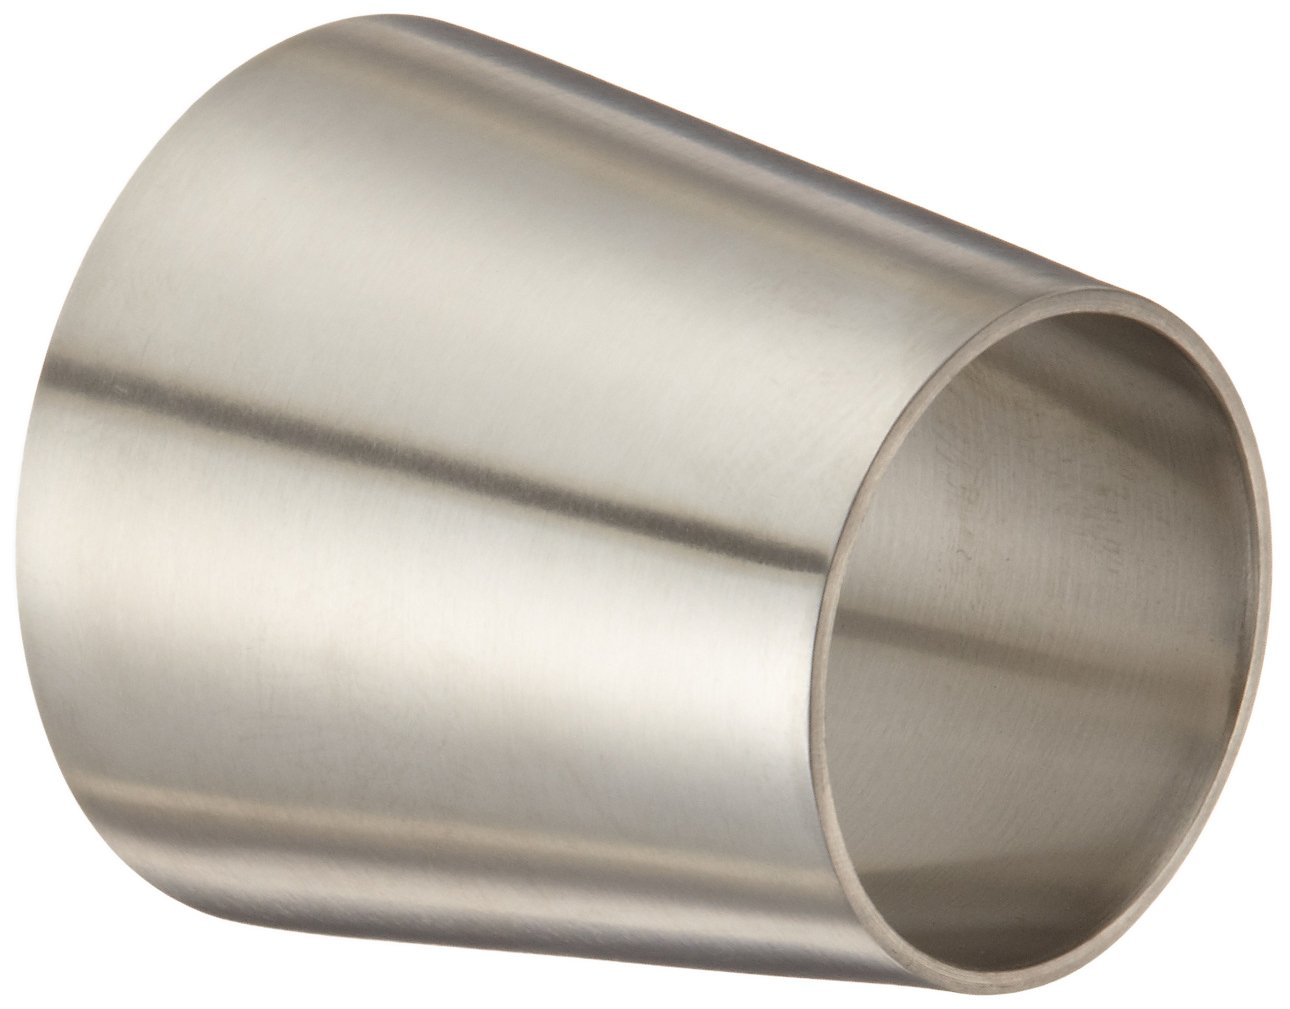 Dixon B31W-G200150P Stainless Steel 304 Polished Fitting, Weld Concentric Reducer, 2'' Tube OD x 1-1/2'' Tube OD